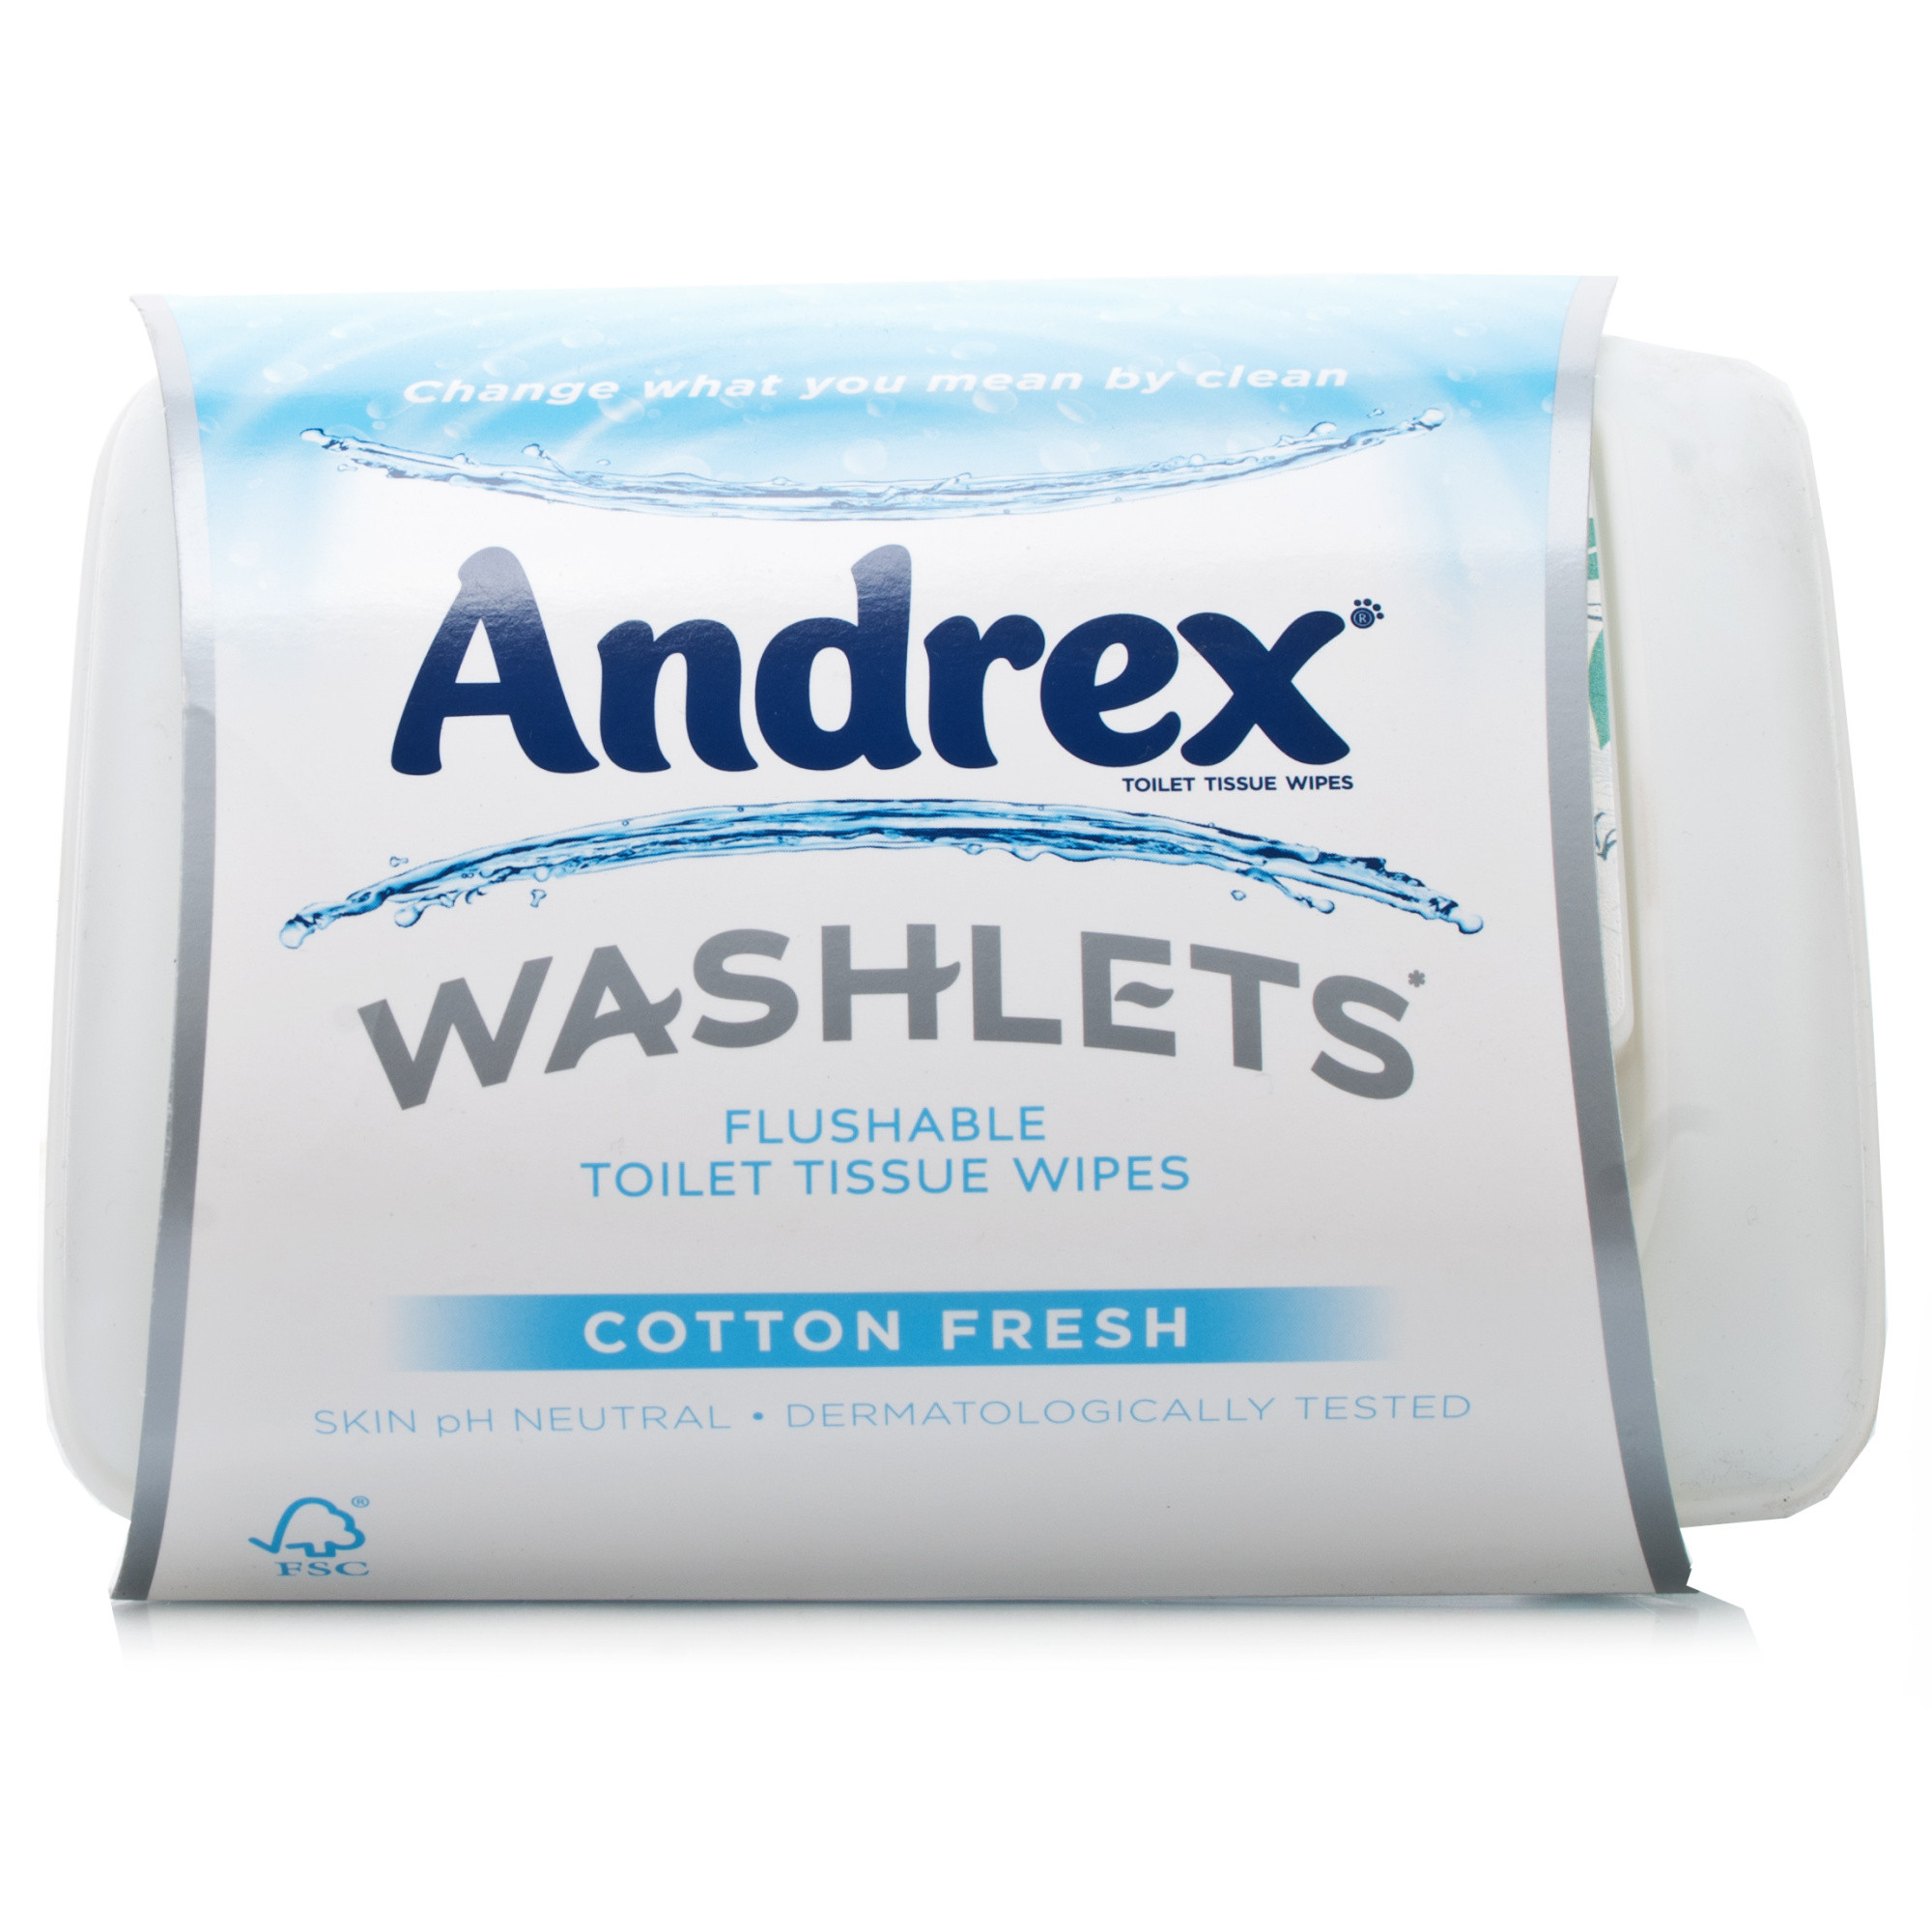 Andrex Washlets Flushable Toilet Tissue